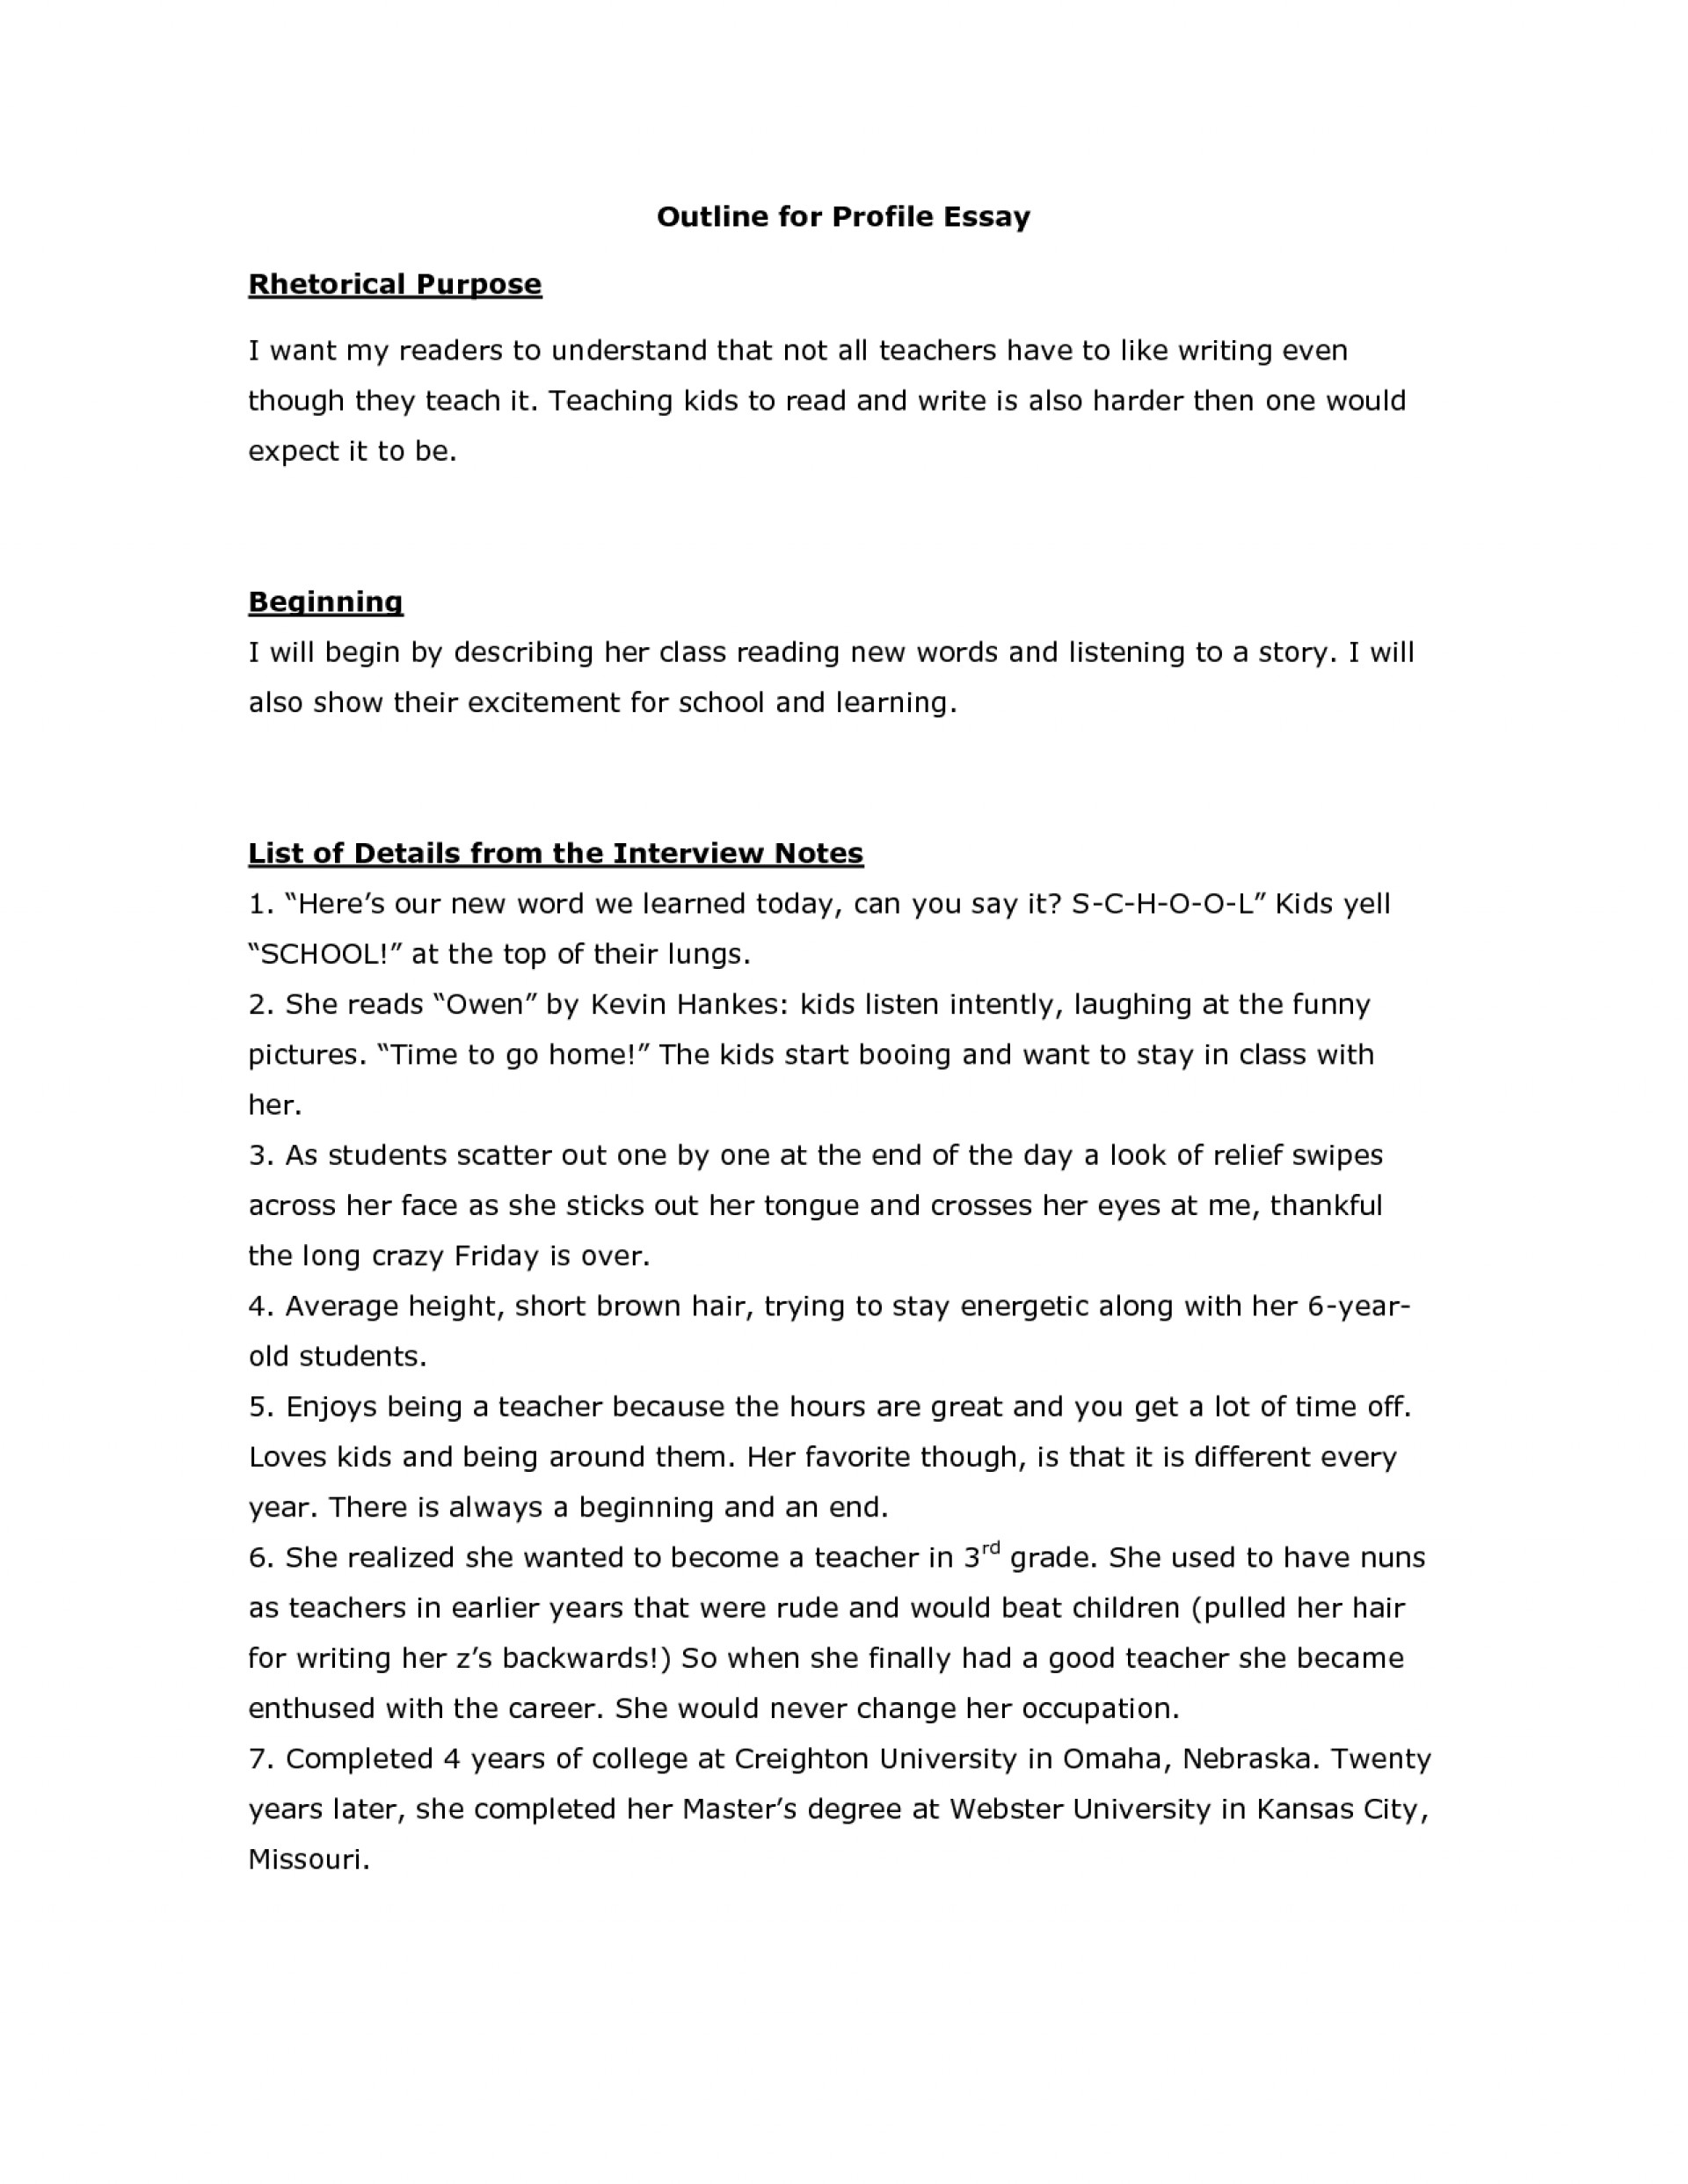 009 Essay Example Profile Outline 477731 Home Wonderful Definition Extended 1920